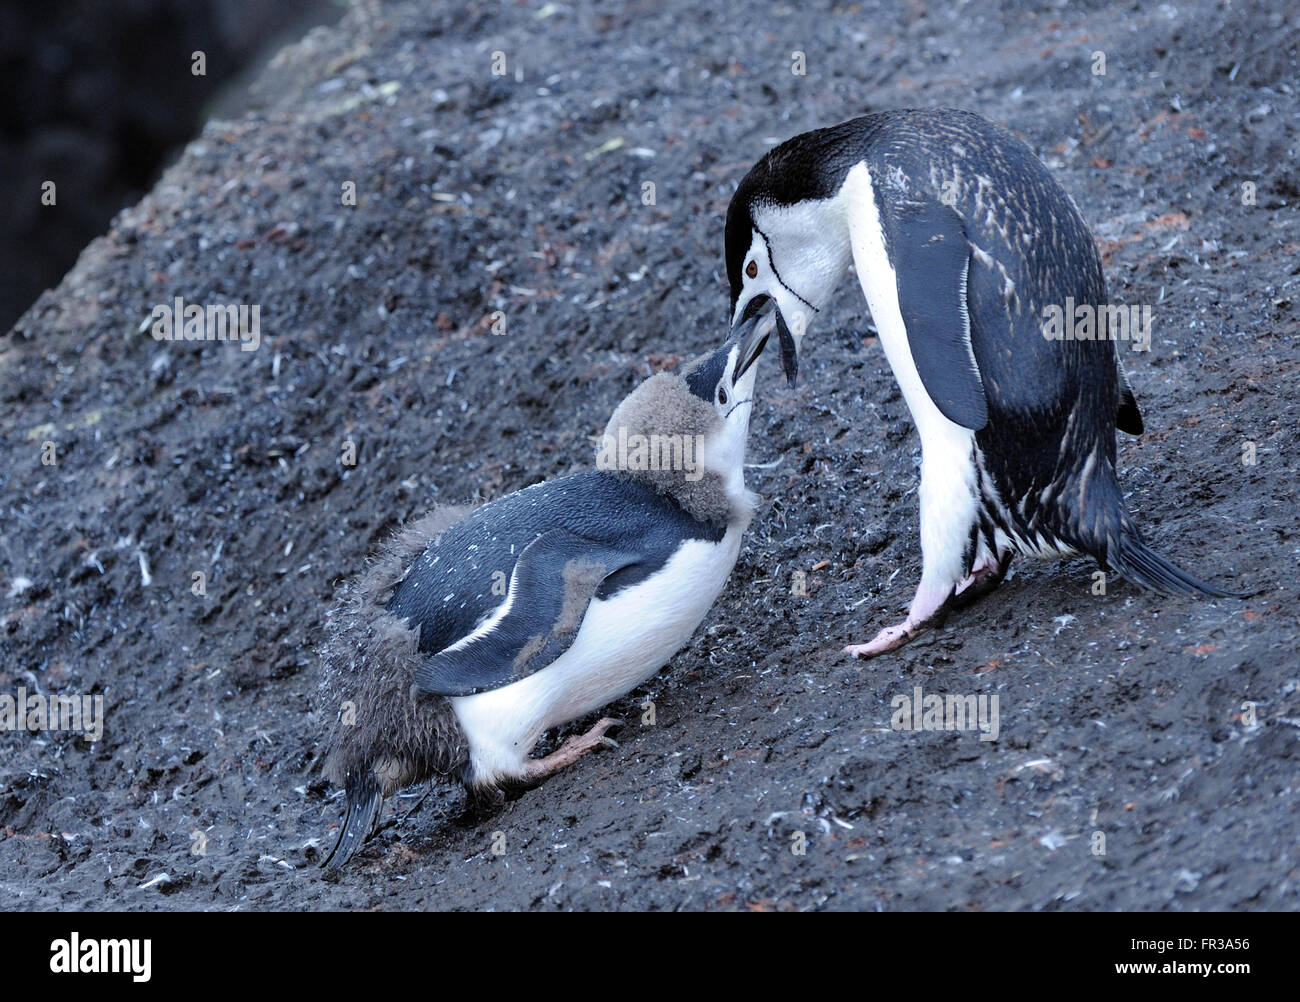 A young Chinstrap Penguin (Pygoscelis antarctica), almost fully moulted into adult plumage is fed by an adult.  - Stock Image